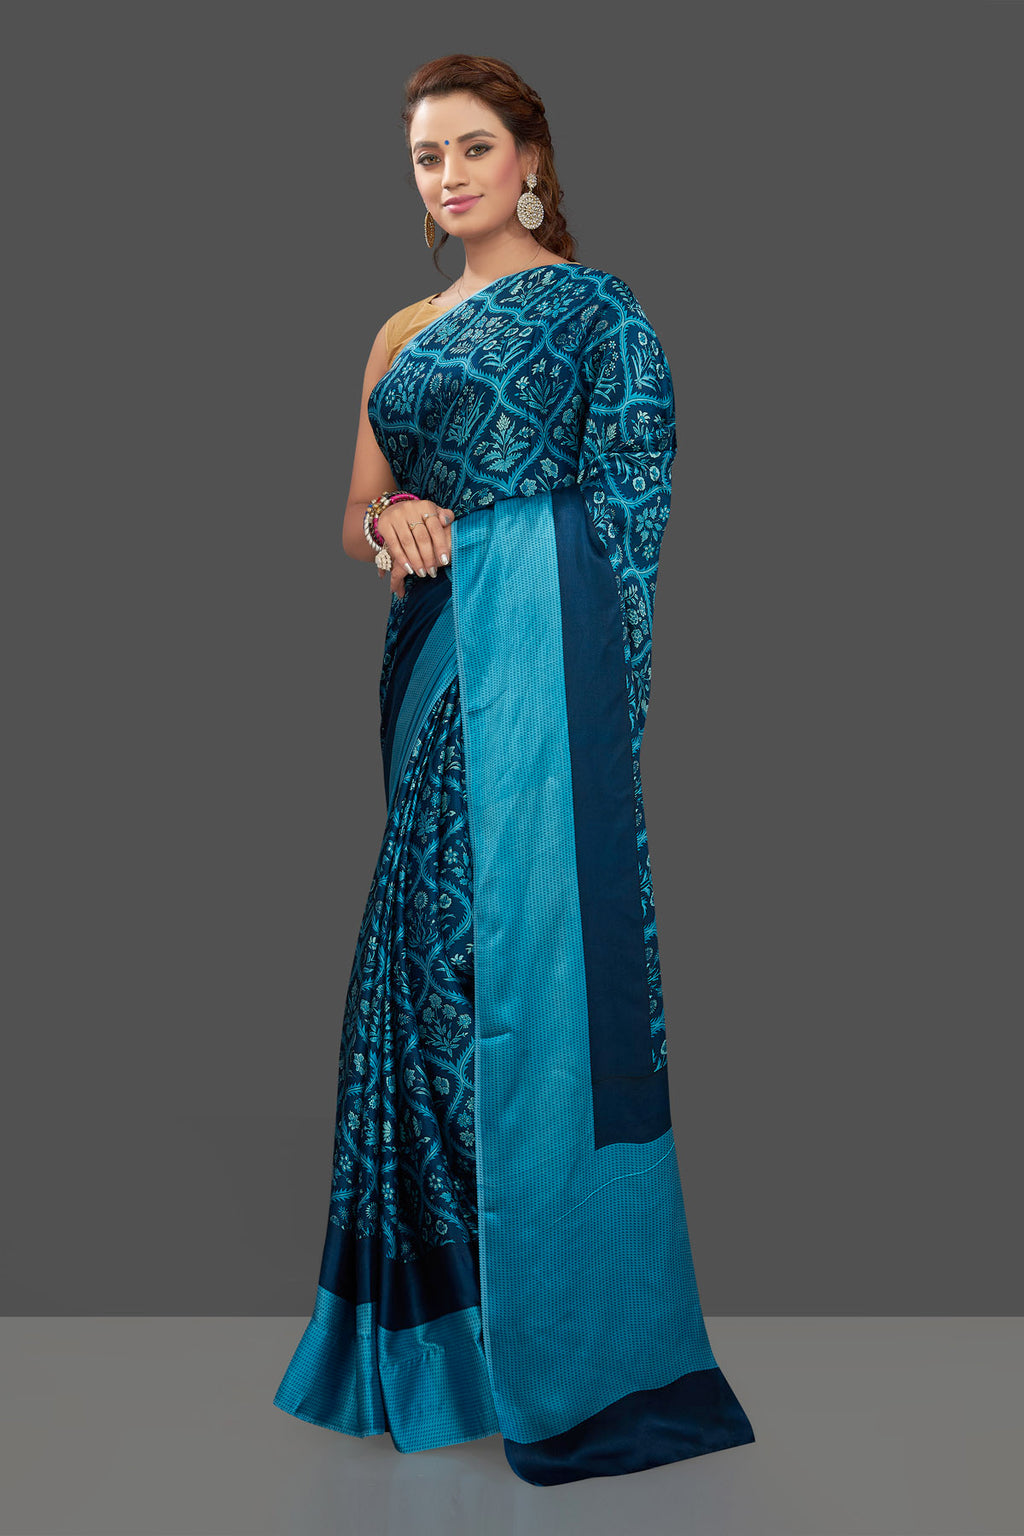 Buy stunning dark blue Mughal print crepe silk saree online in USA. Elevate your Indian style on special occasions in beautiful designer sarees, crepe silk sarees, georgette saris, printed sarees from Pure Elegance Indian clothing store in USA.-full view